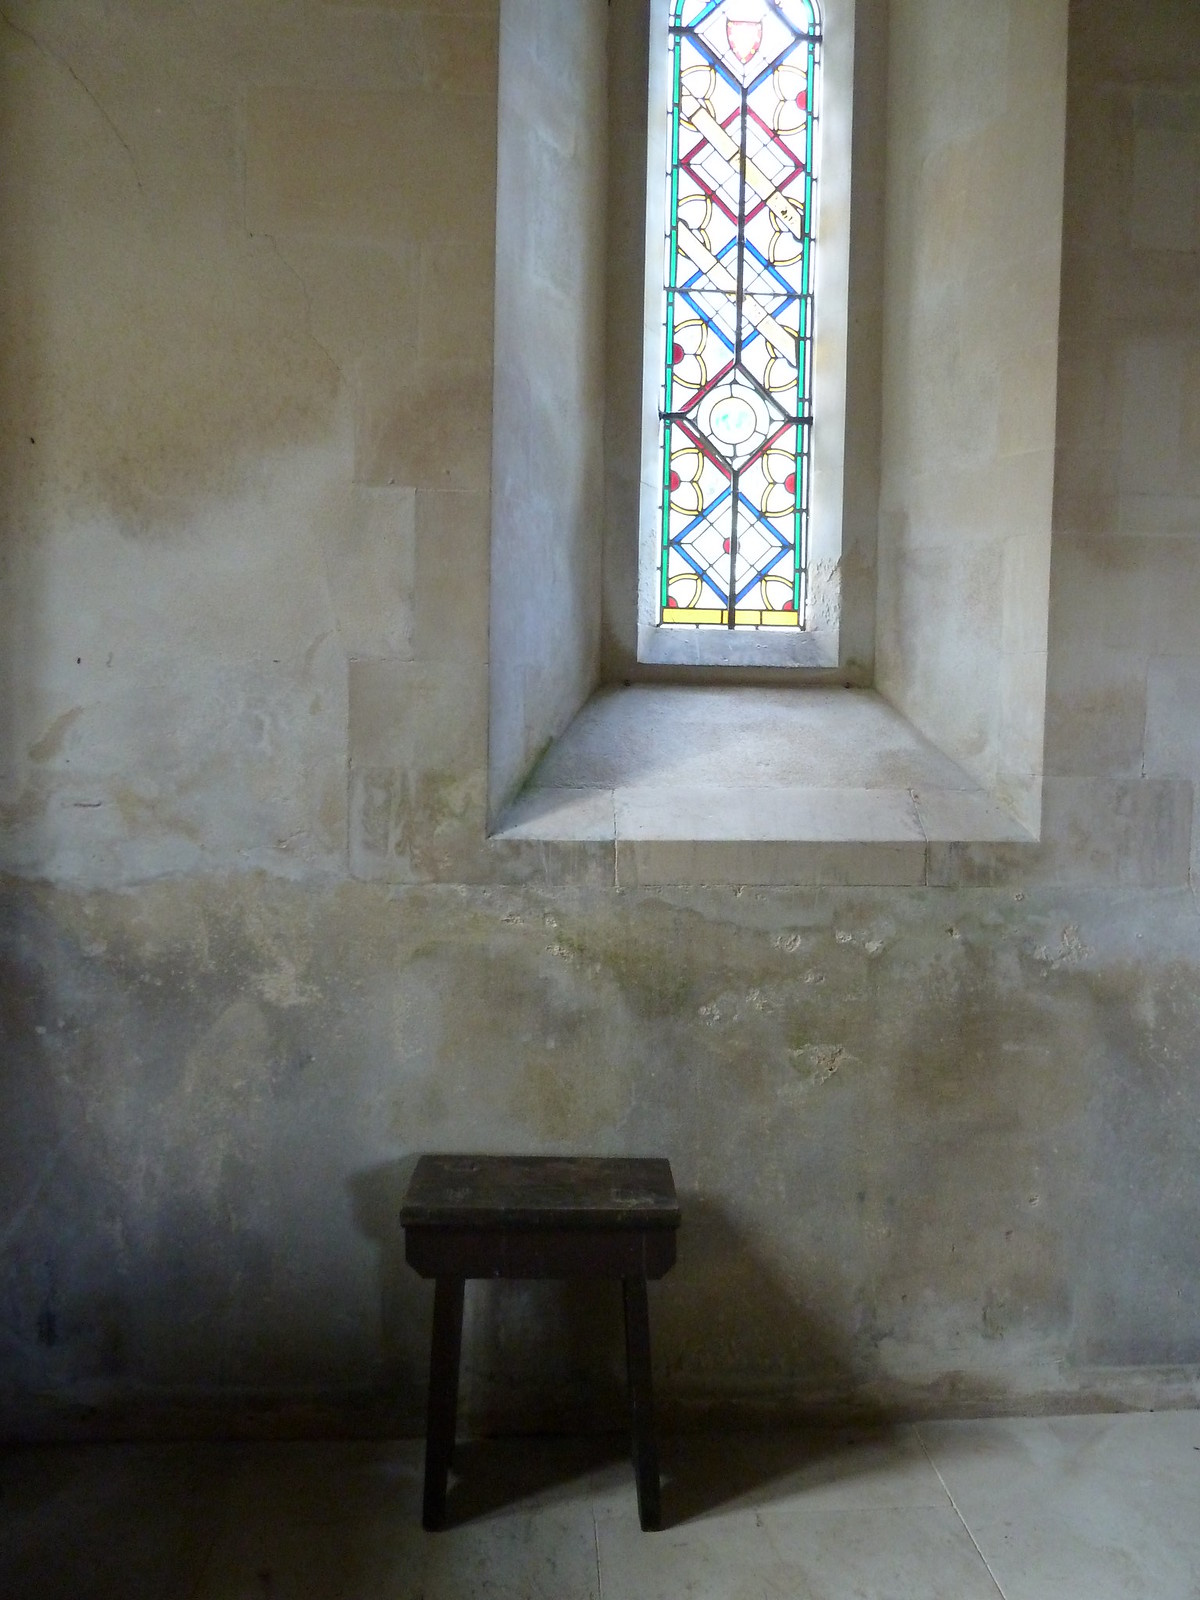 photo from walk Bridehead church - Dorchester to Portesham, swcwalk275.